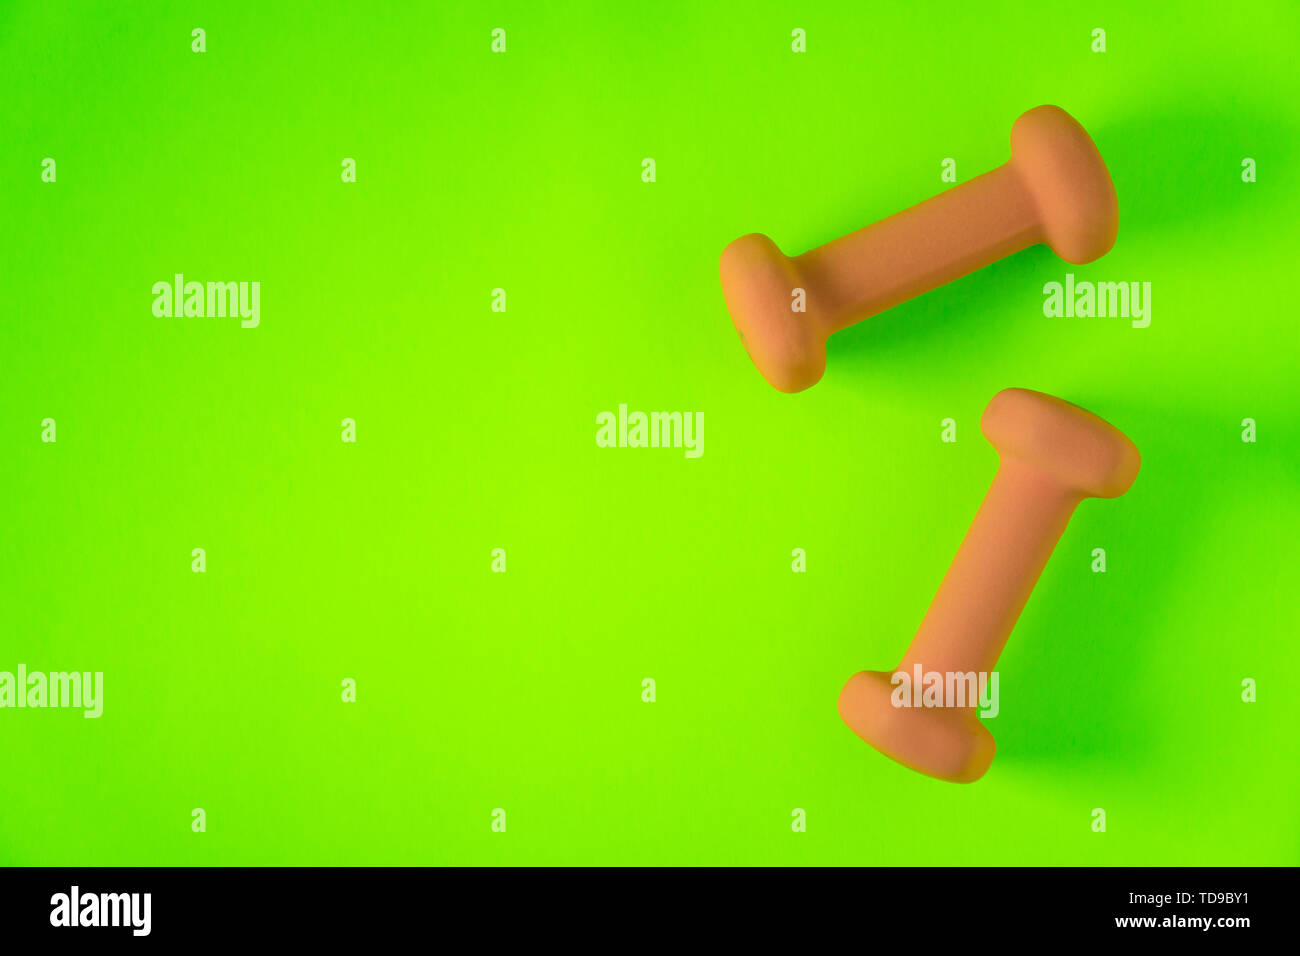 Fitness equipment with womens yellow orange weights/ dumbbells isolated on a neon lime green background with copyspace (aka empty text space). - Stock Image